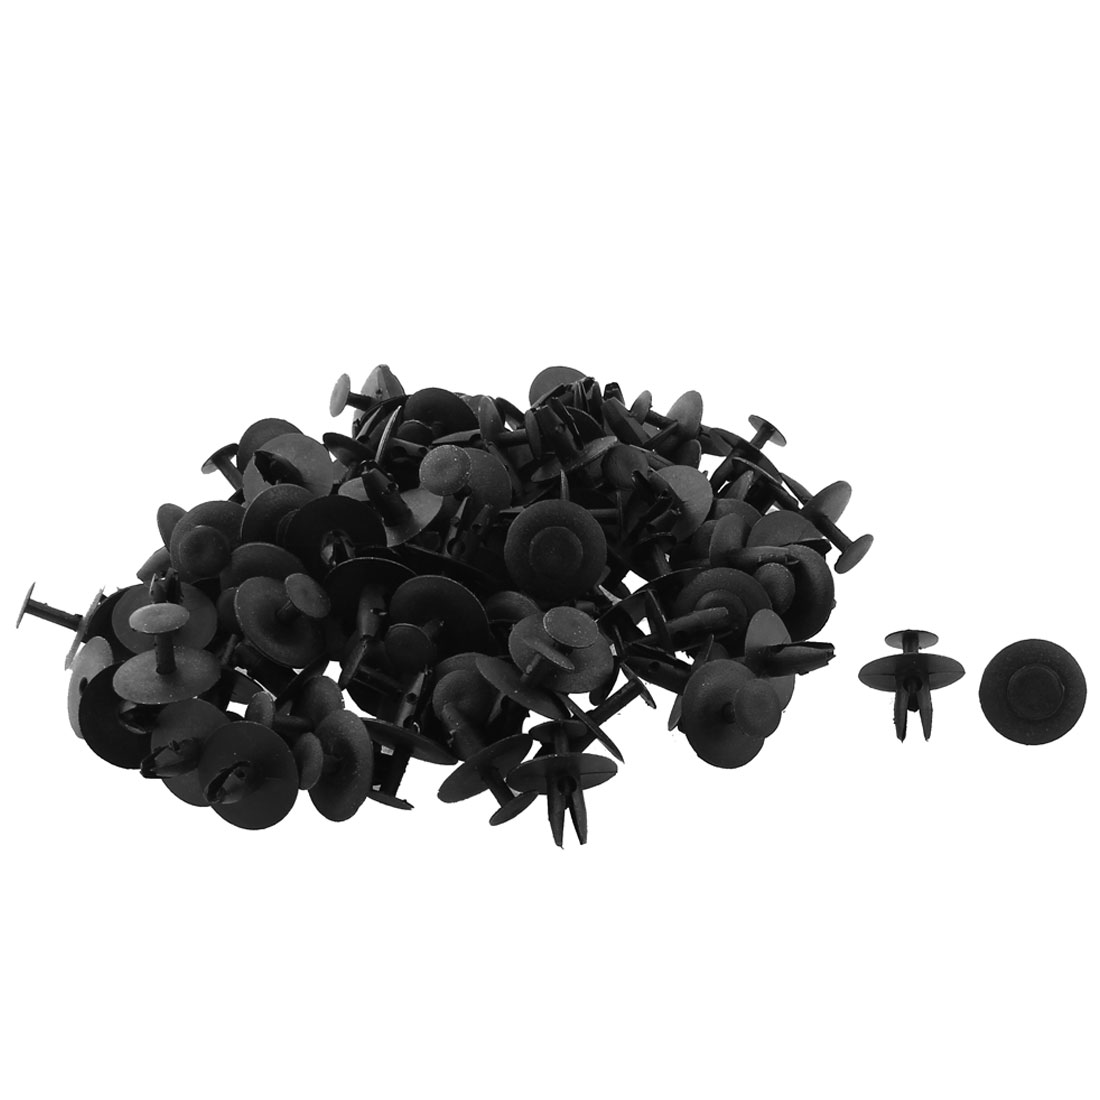 100pcs 7mm Dia Hole 21mm Head Black Plastic Rivets Fastener Fender Car Bumper Push Clips